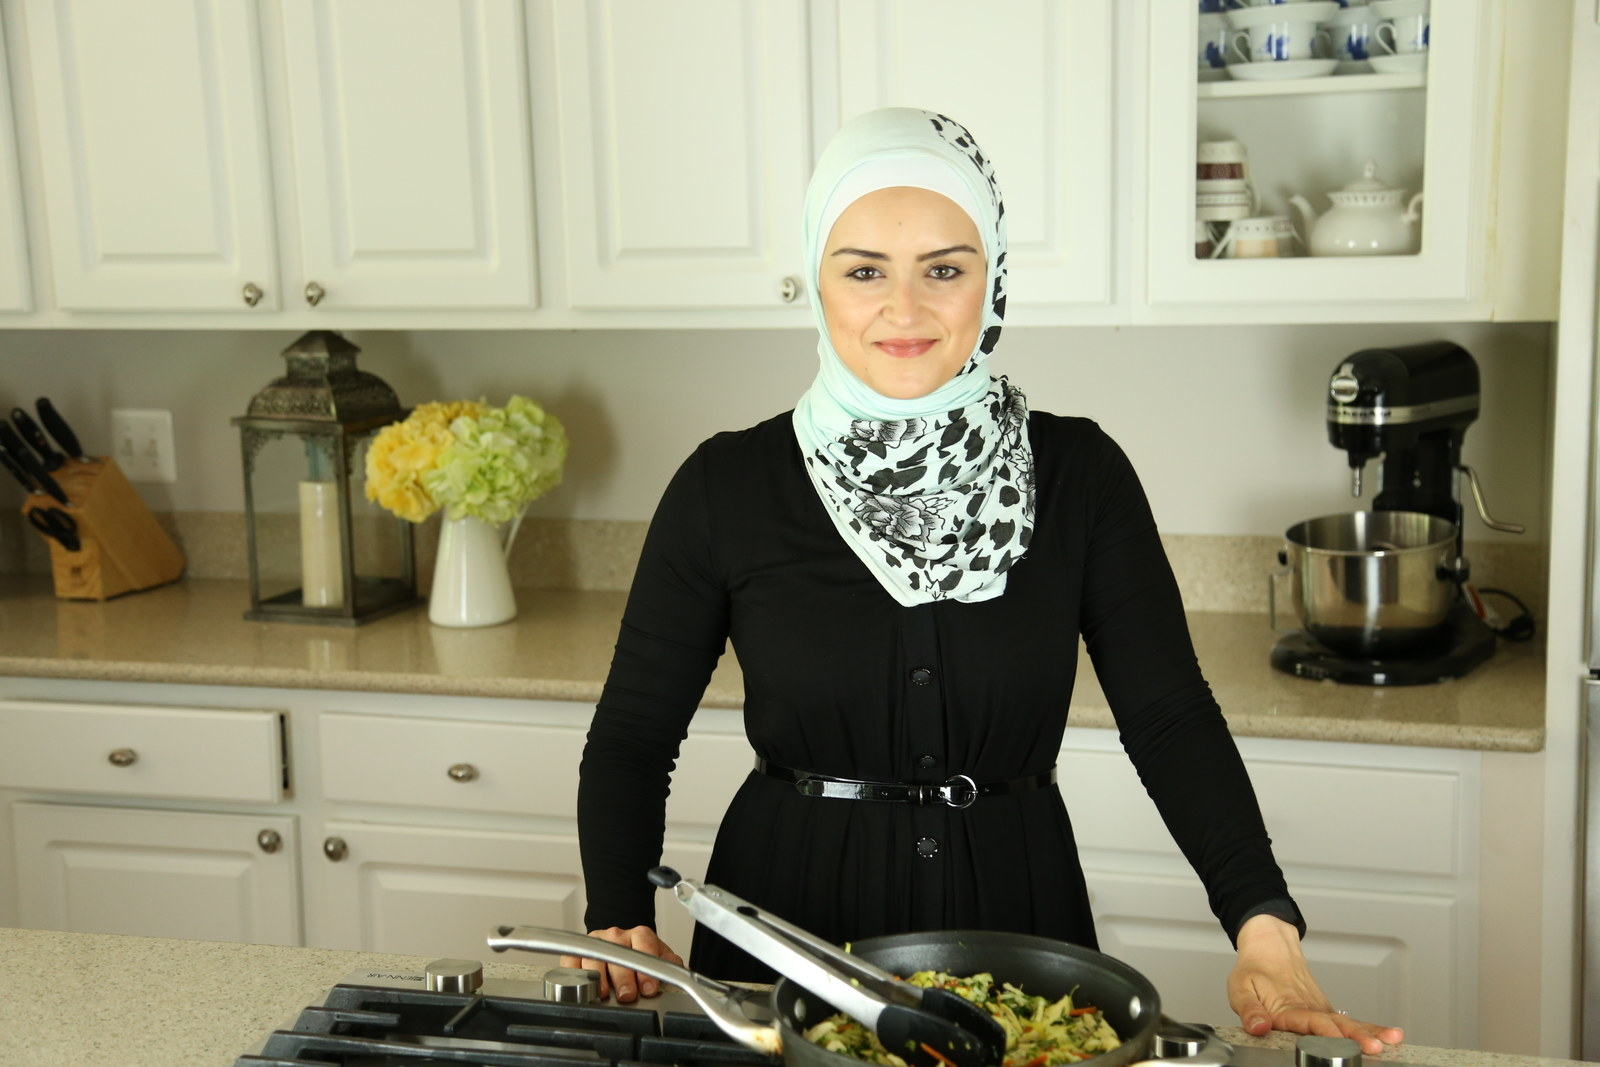 Here's What A Muslim Dietitian Eats During Ramadan